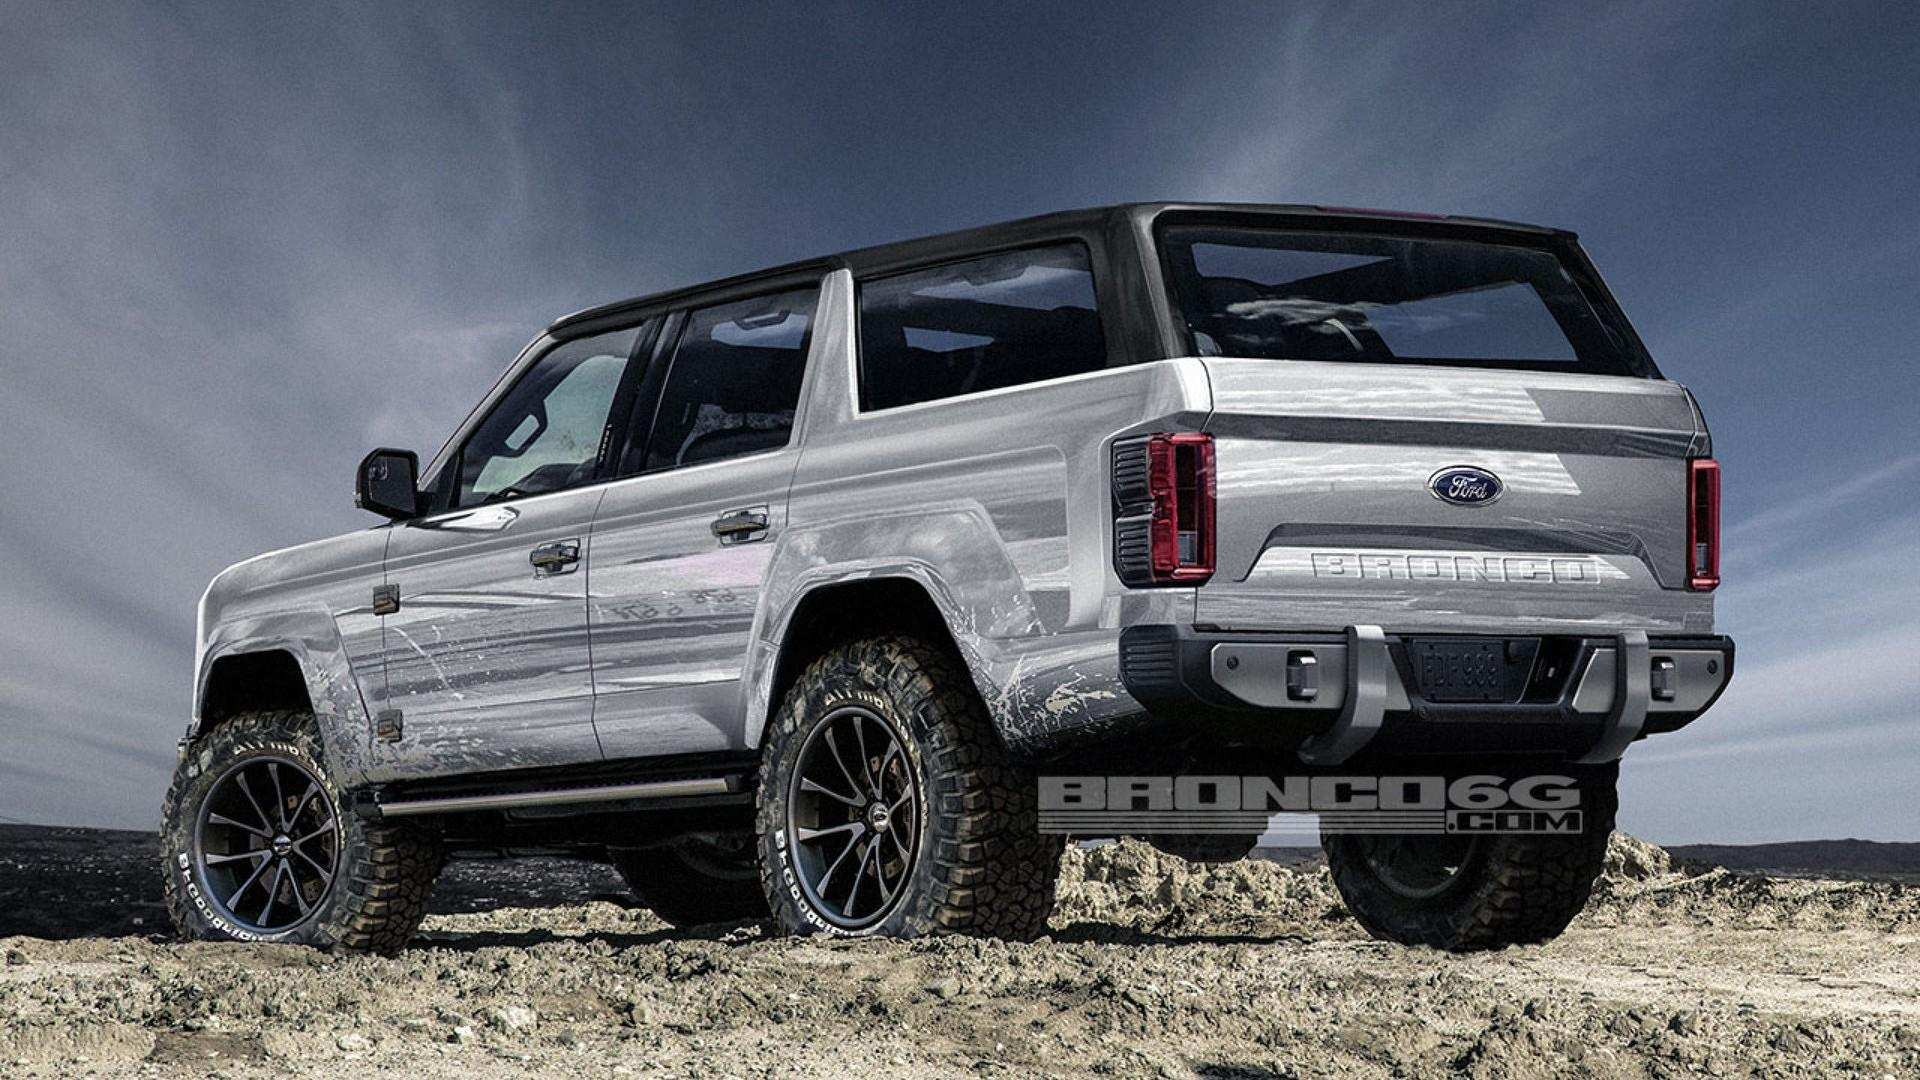 18 Gallery of Toyota Bronco 2020 Redesign and Concept with Toyota Bronco 2020